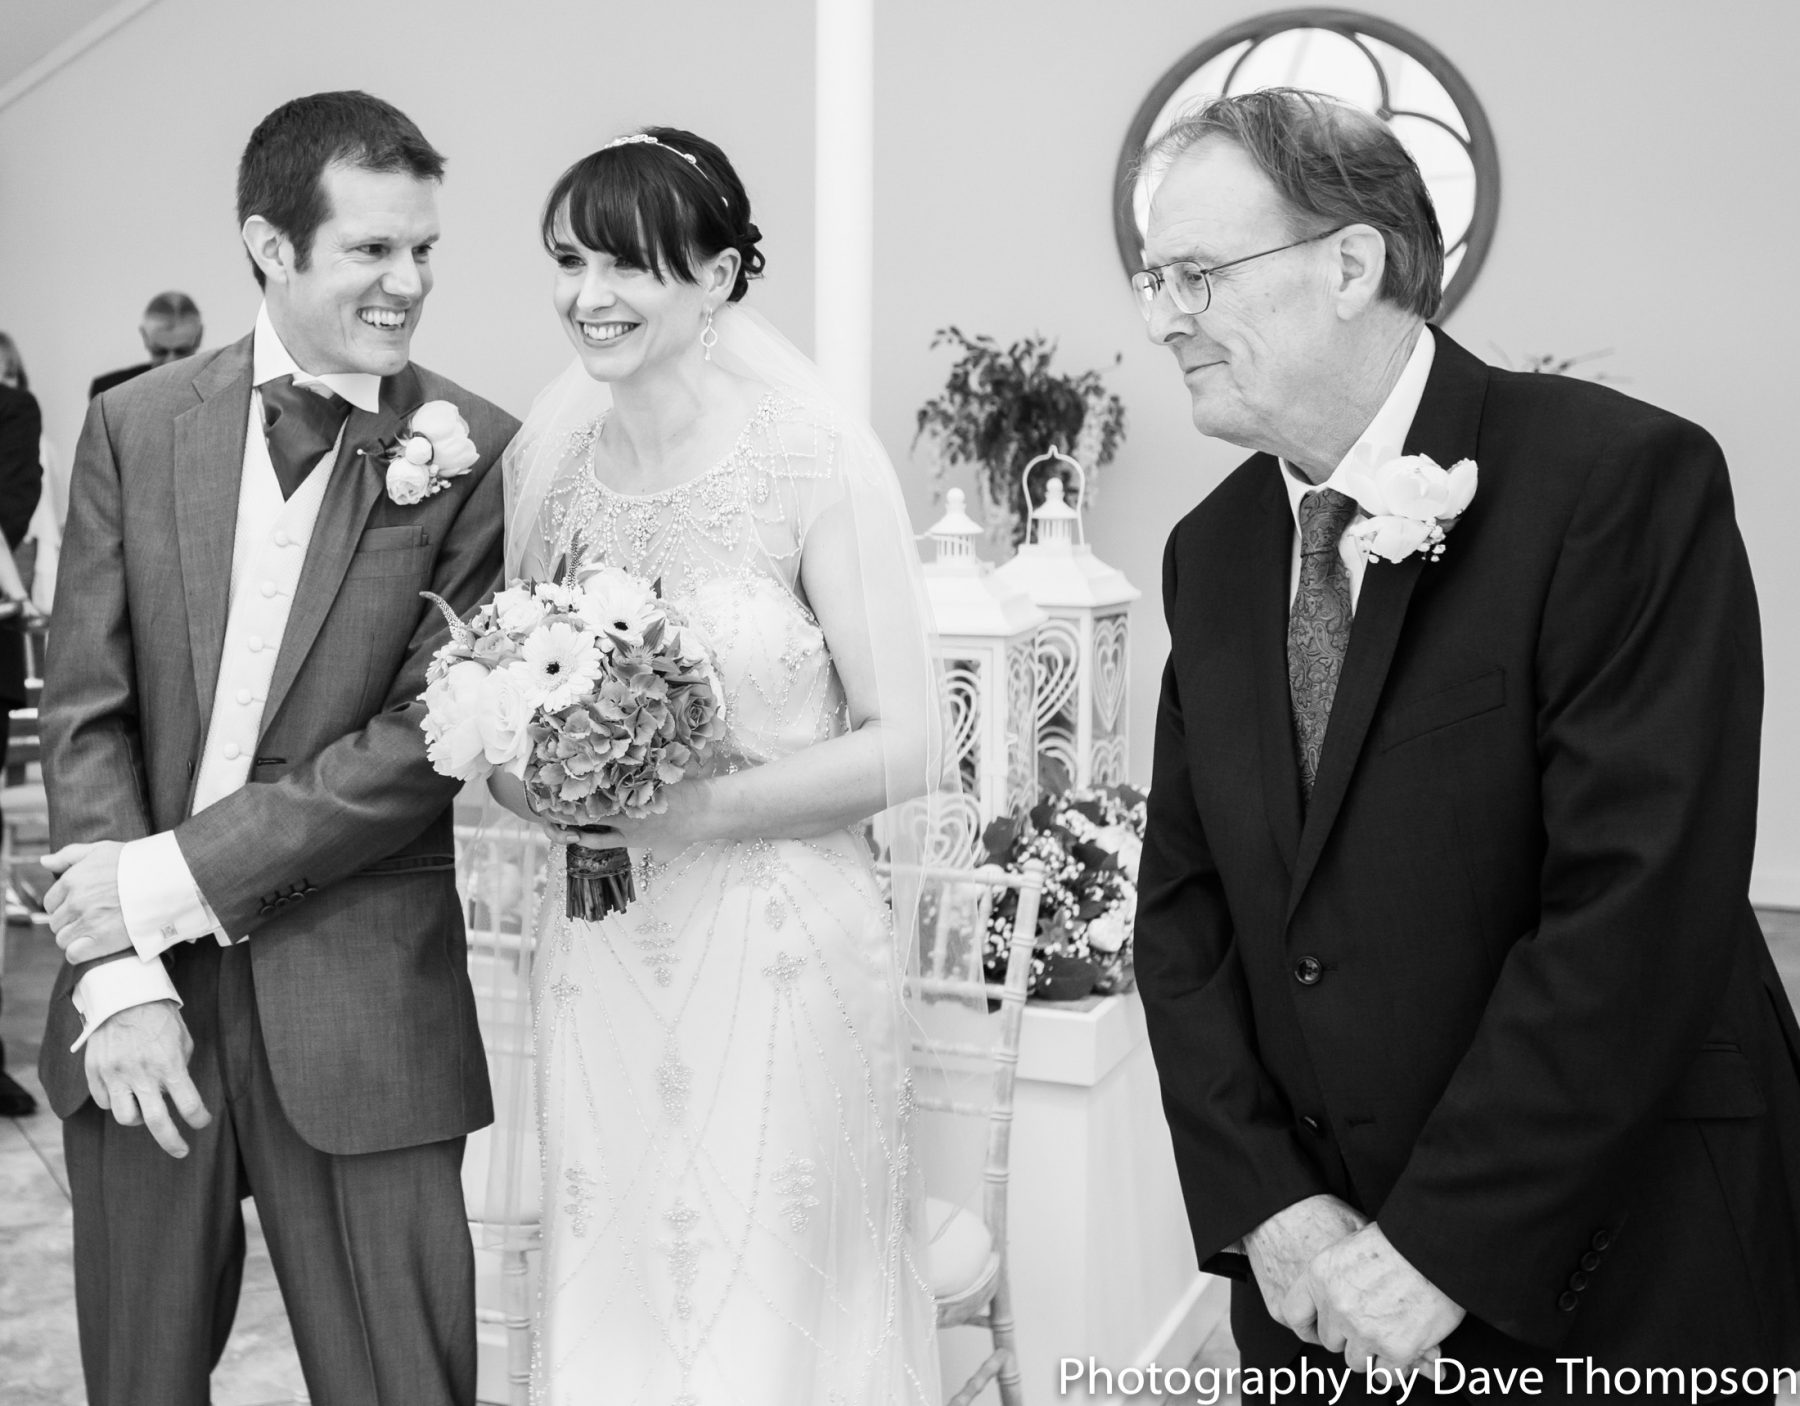 The father of the bride gives his daughter away